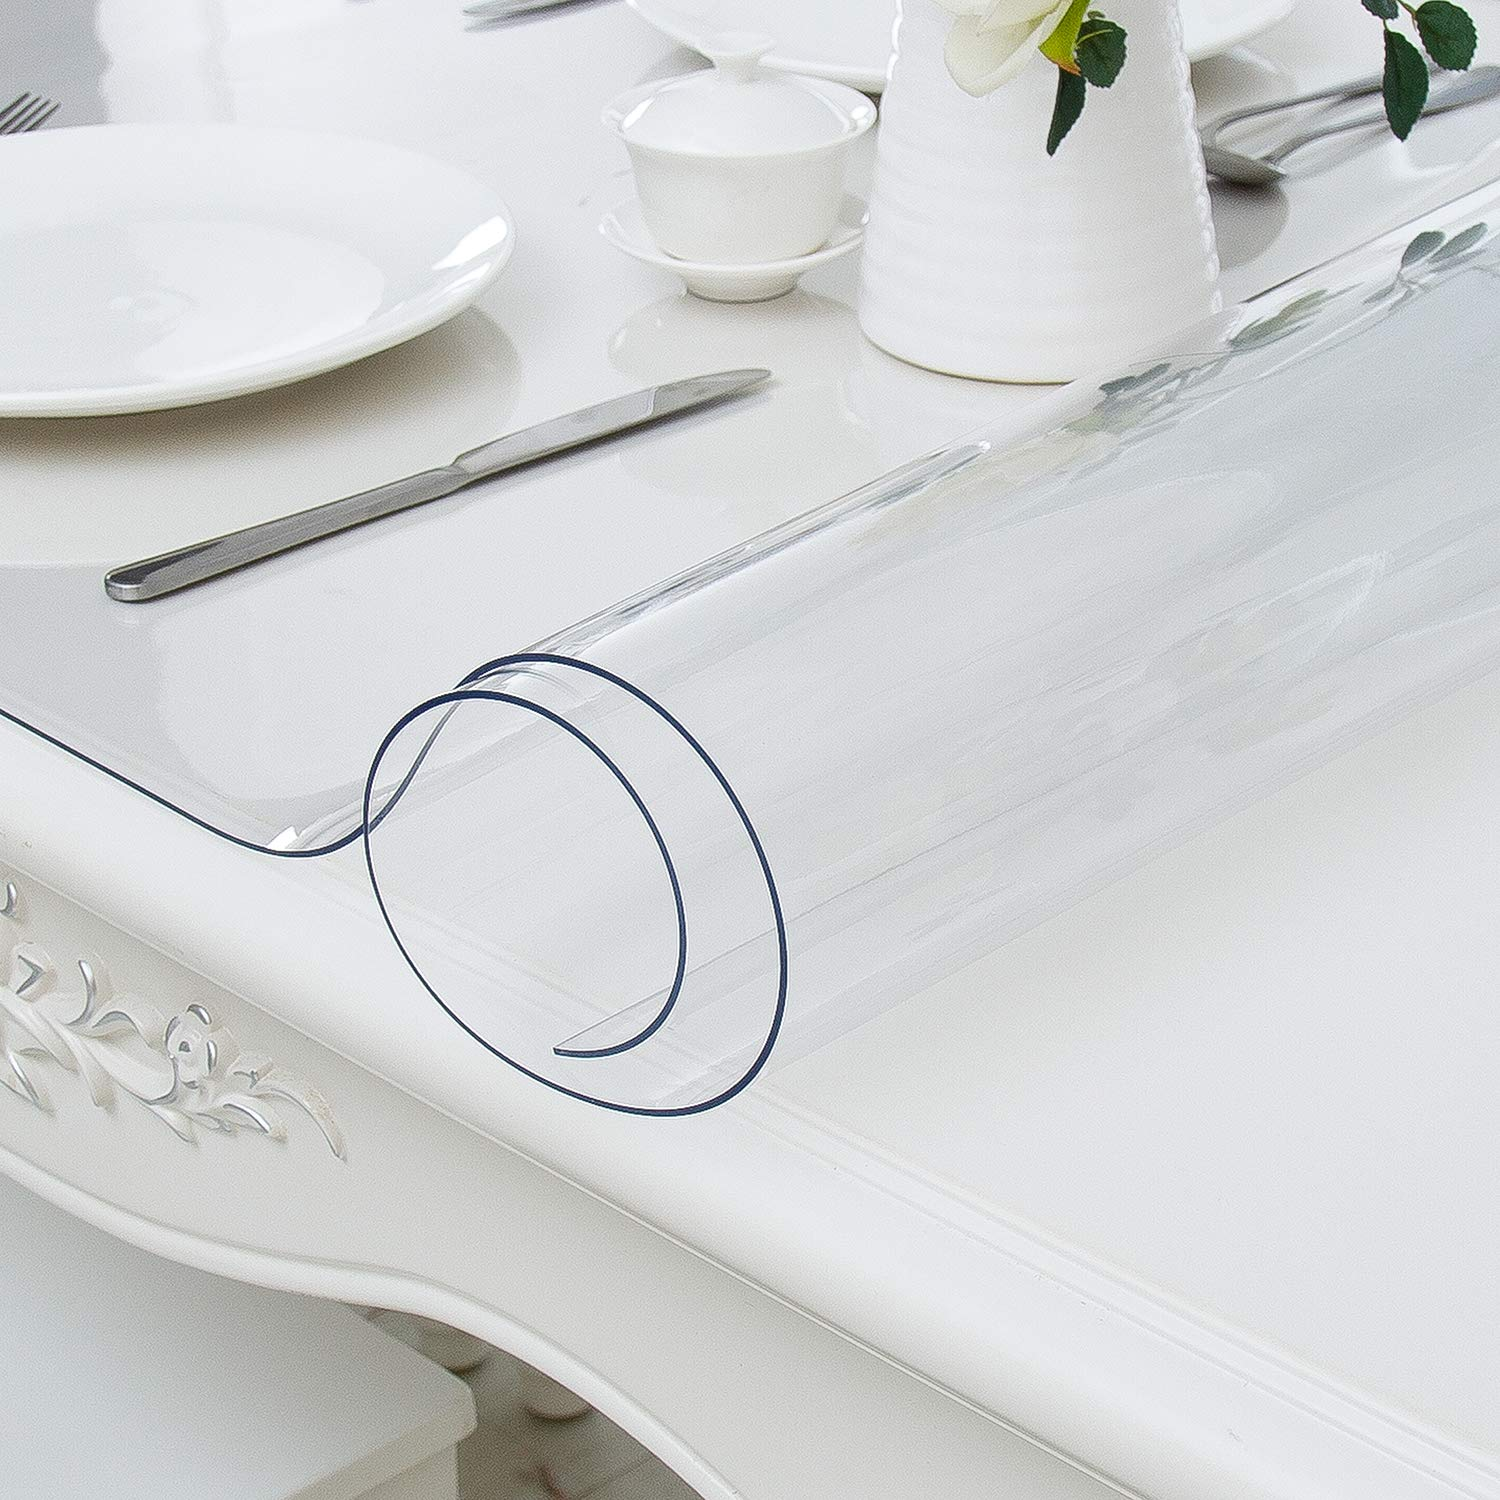 Hewaba Home Rectangle PVC Table Protector - 36 x 60 Inches, 2mm Thick Custom Clear Waterproof Plastic Tablecloth, Kitchen Dining Room Wooden Furniture Protective Cover